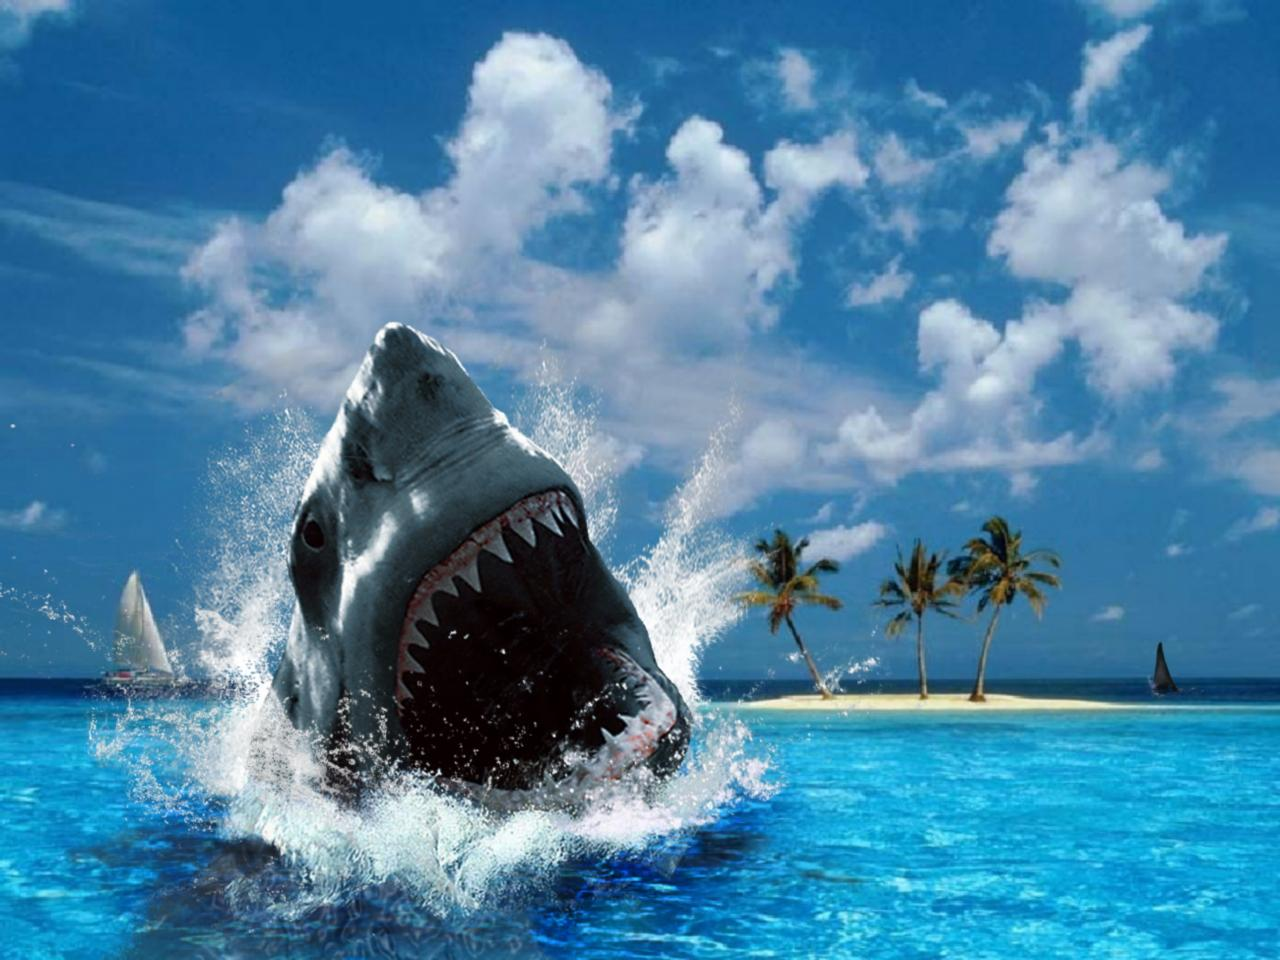 Shark Wallpapers with sea backgrounds suitable for adventures desktop 1280x960